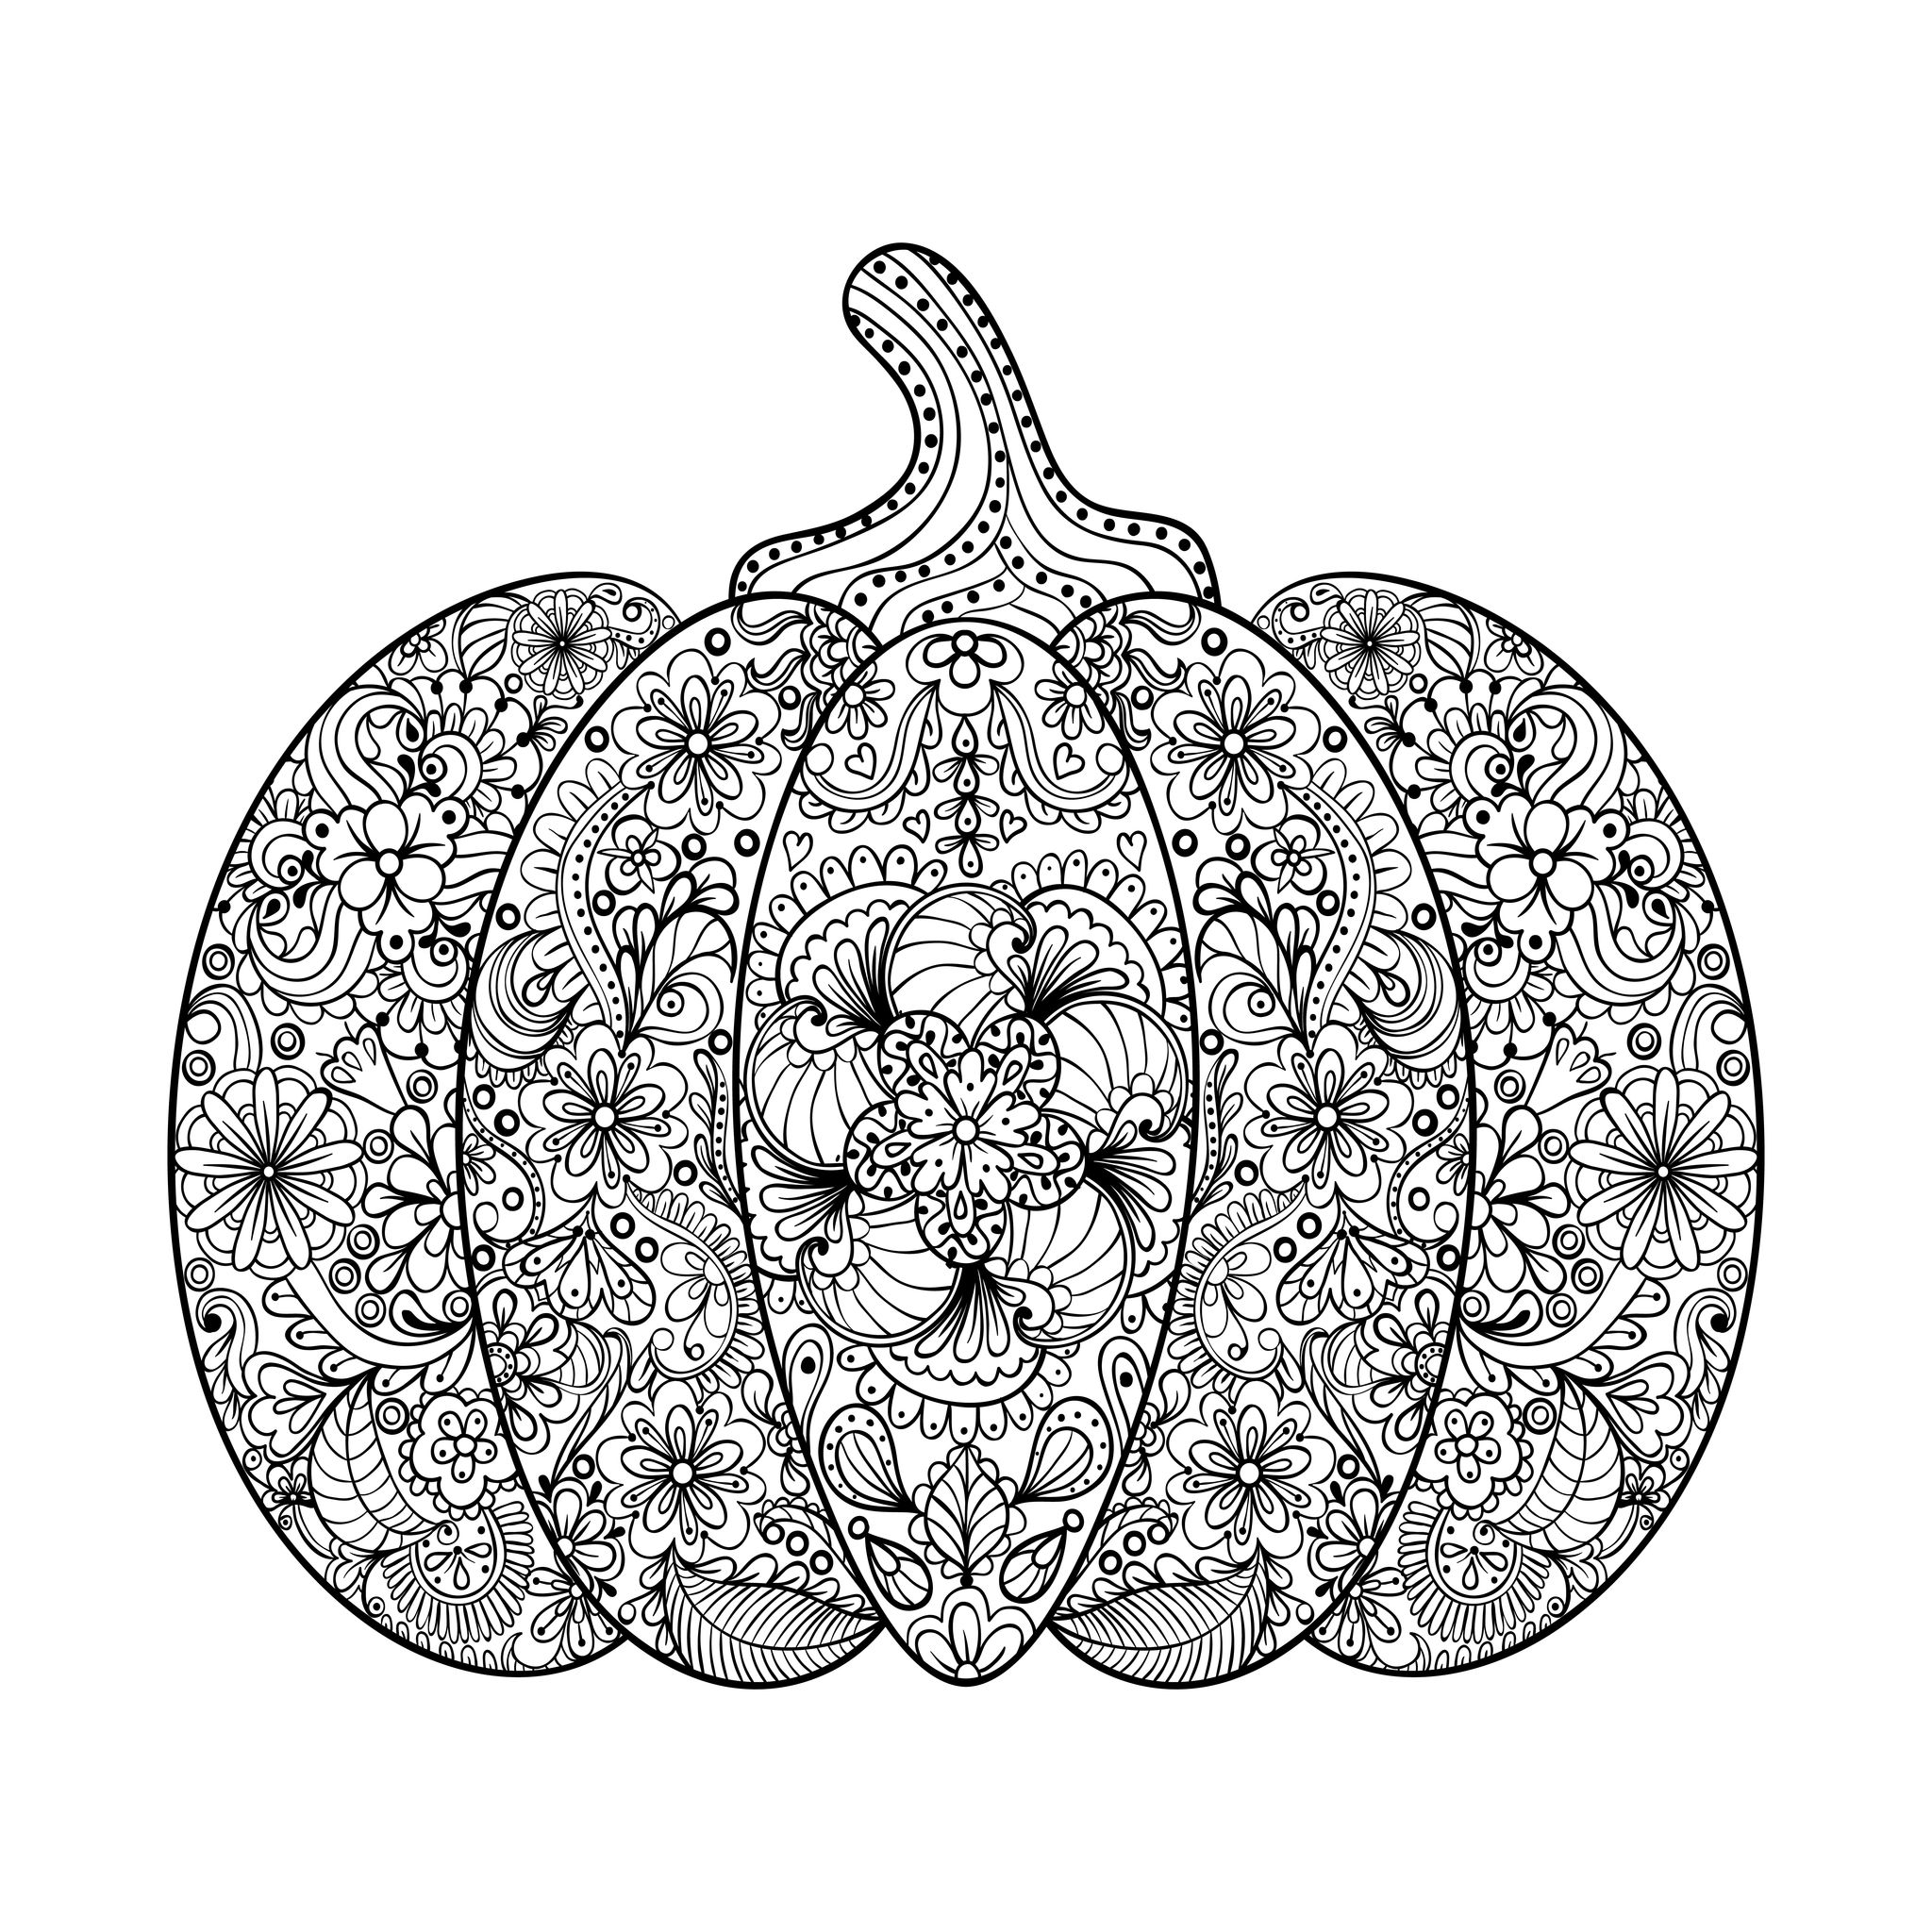 Coloring Pages For Adults Halloween At Getdrawings Com